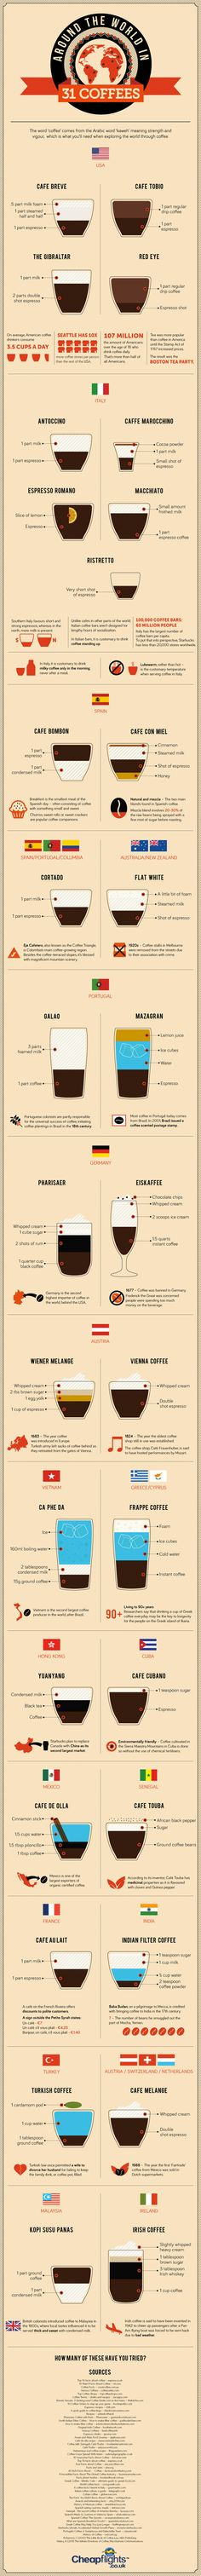 31 Beautiful, Simple Ways to Drink Your Coffee Around the World [INFOGRAPHIC] |Foodbeast